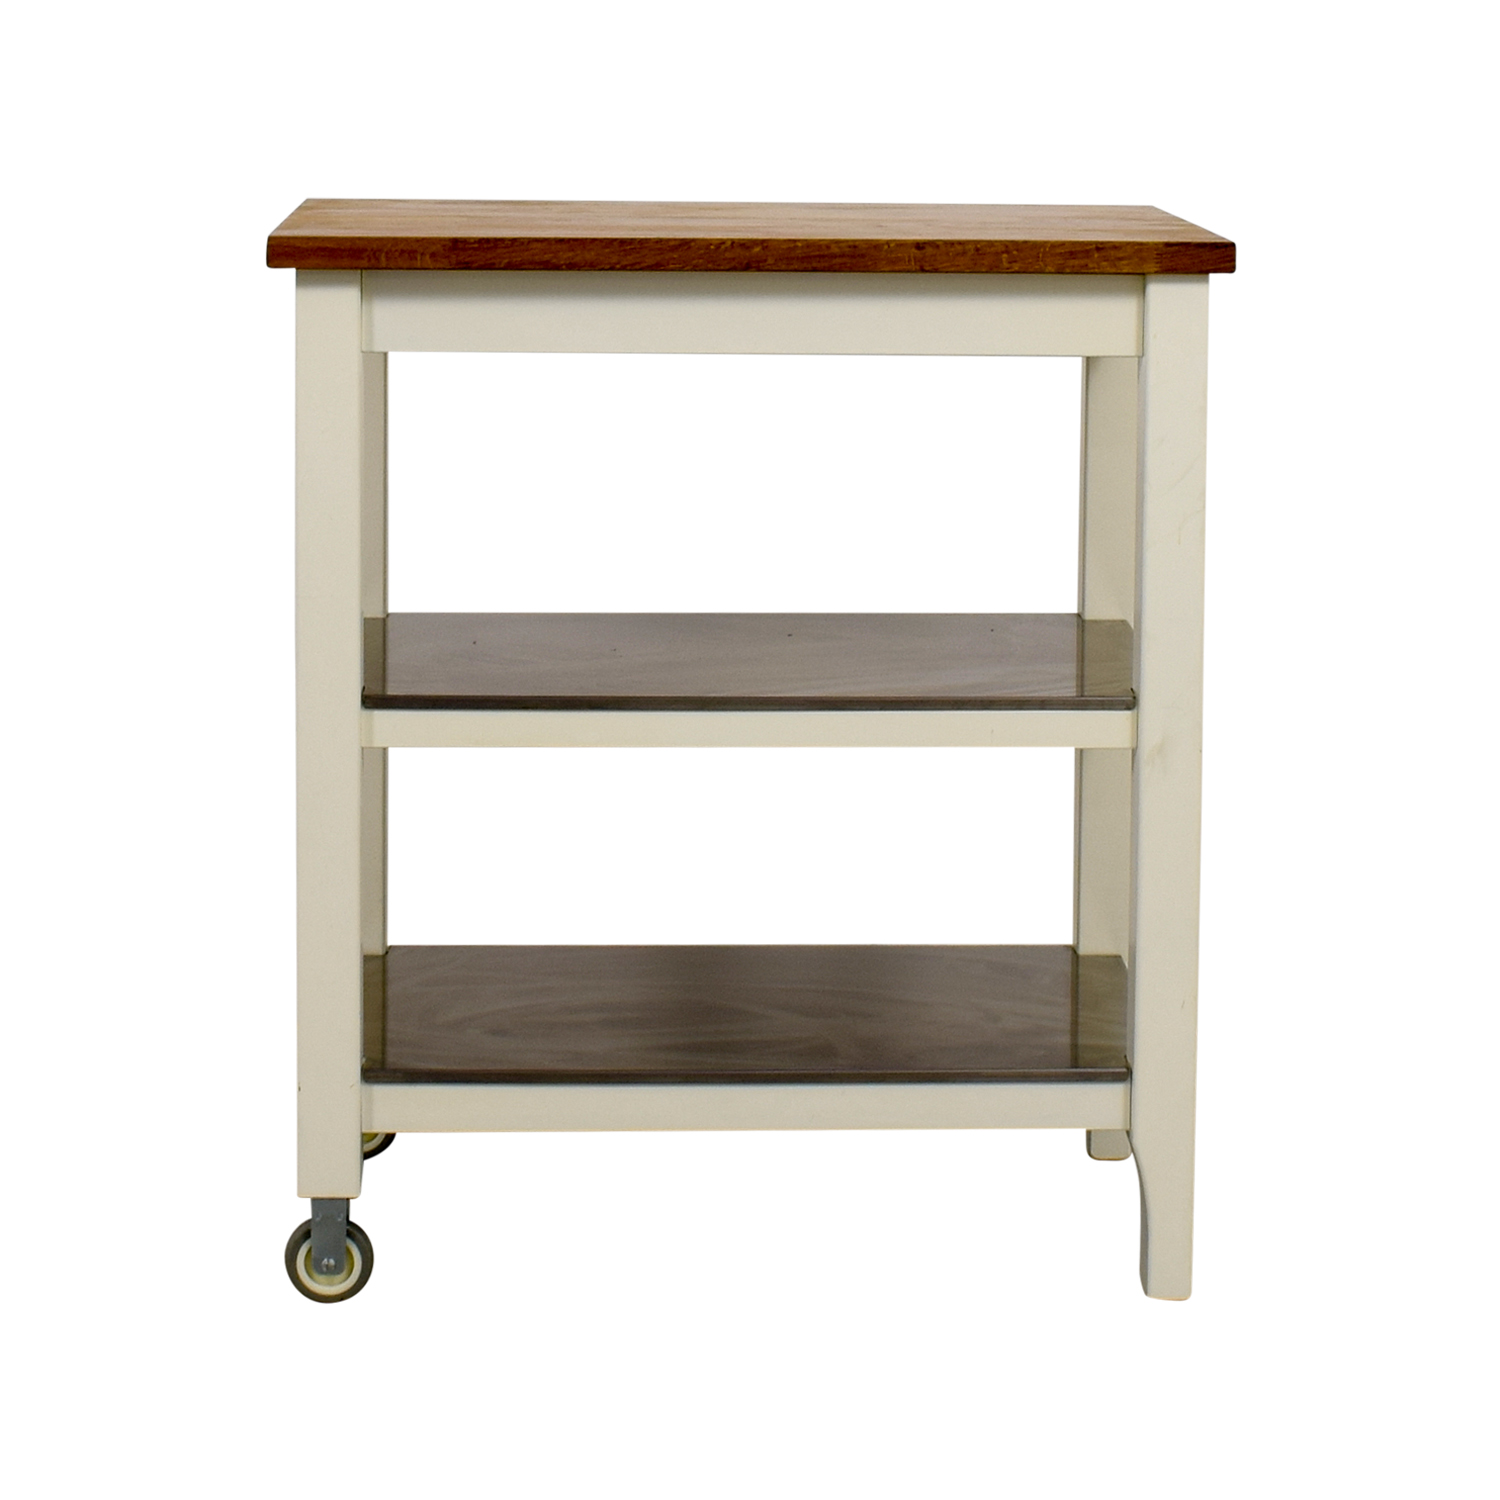 Buy ikea stenstorp kitchen cart ikea tables